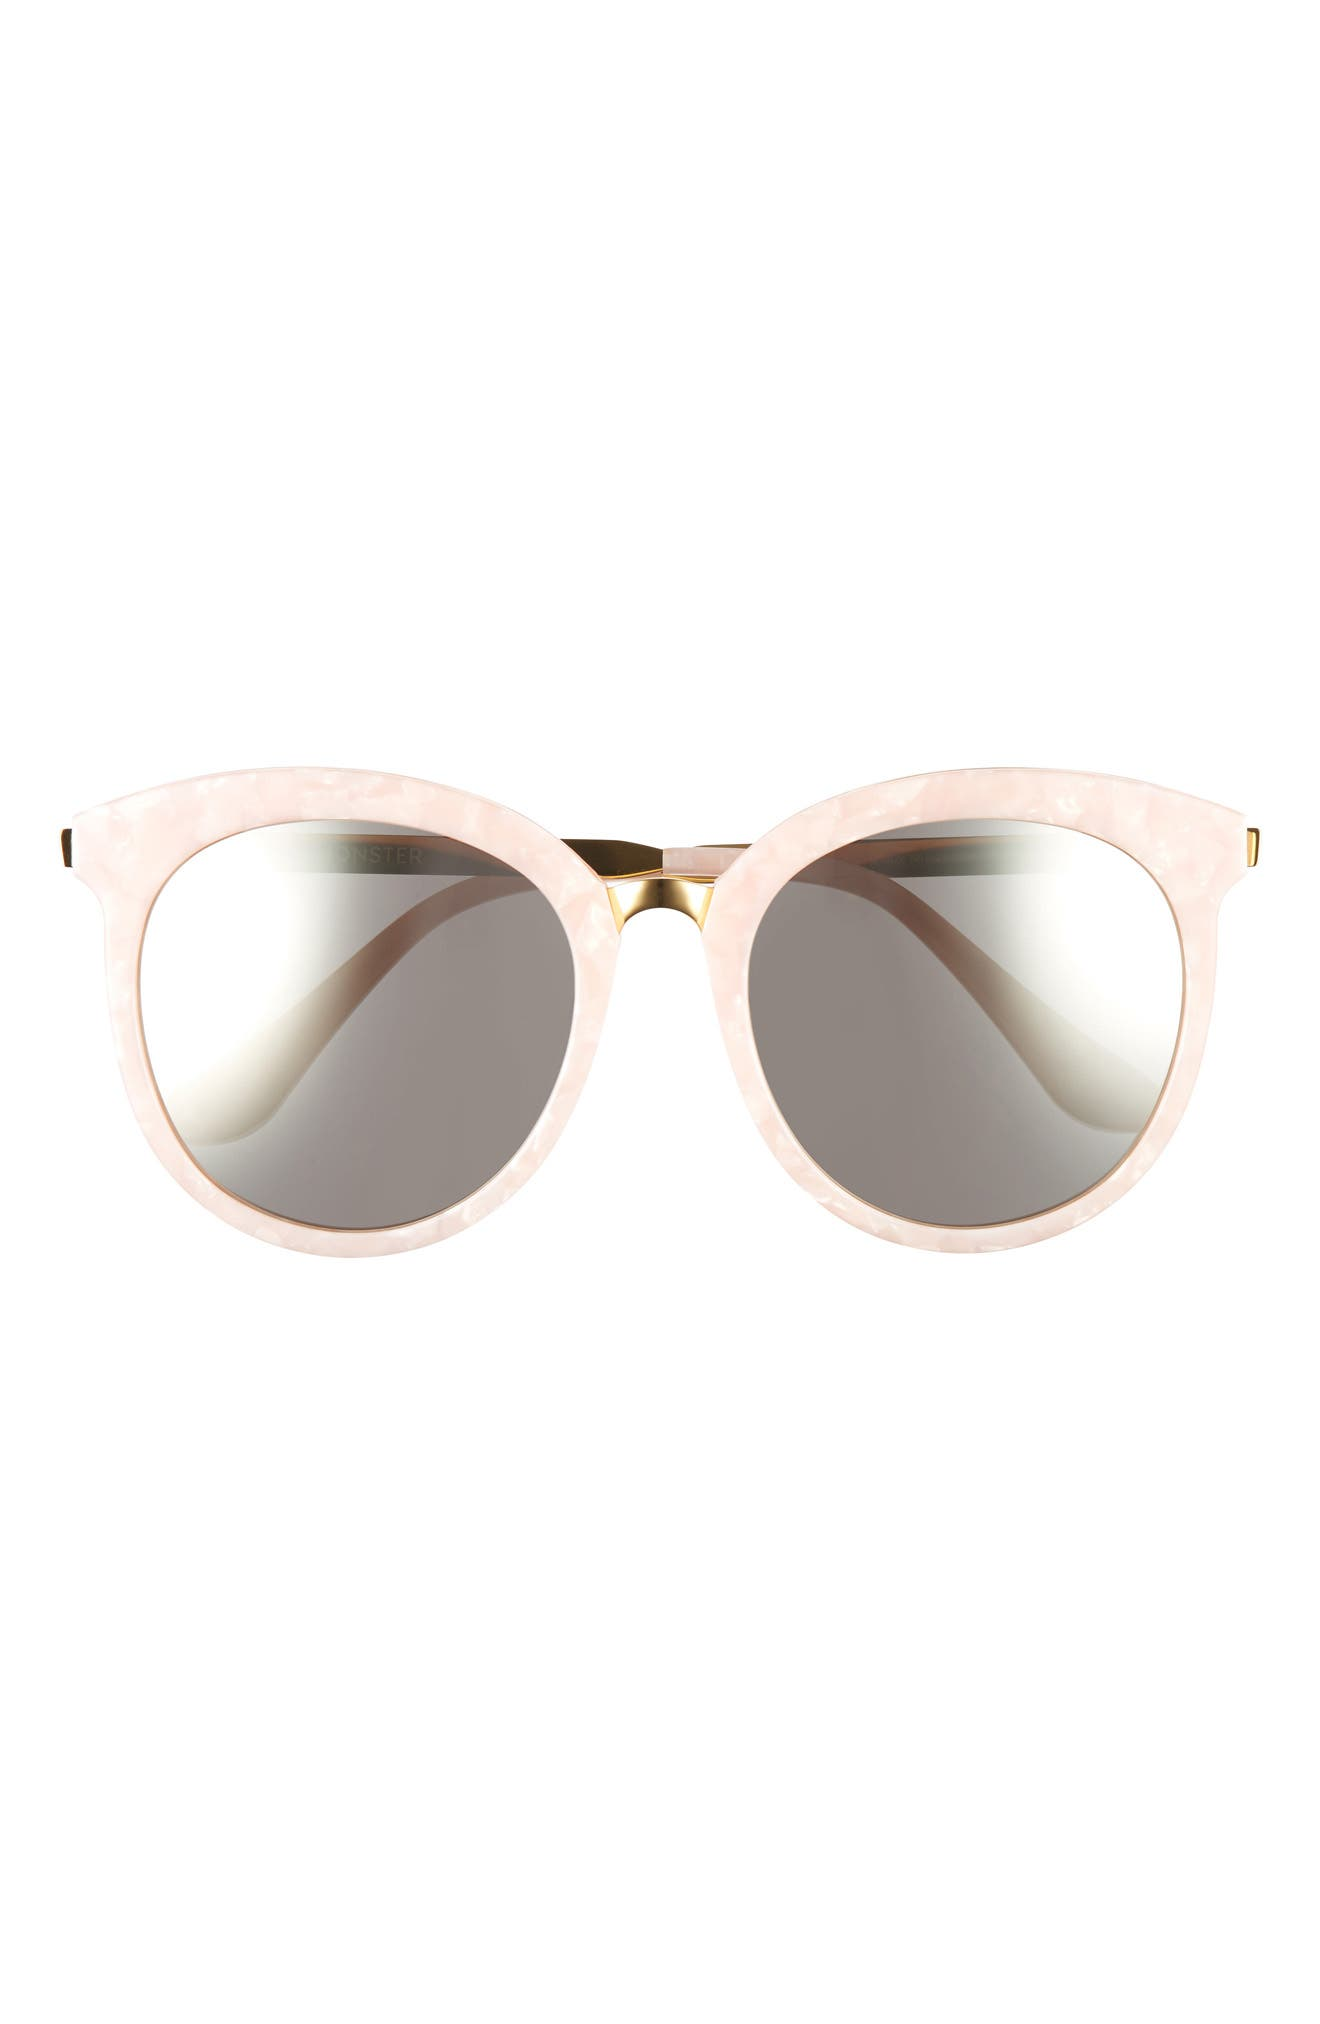 Lovesome 56mm Cat Eye Sunglasses,                         Main,                         color, Light Pink/Gold